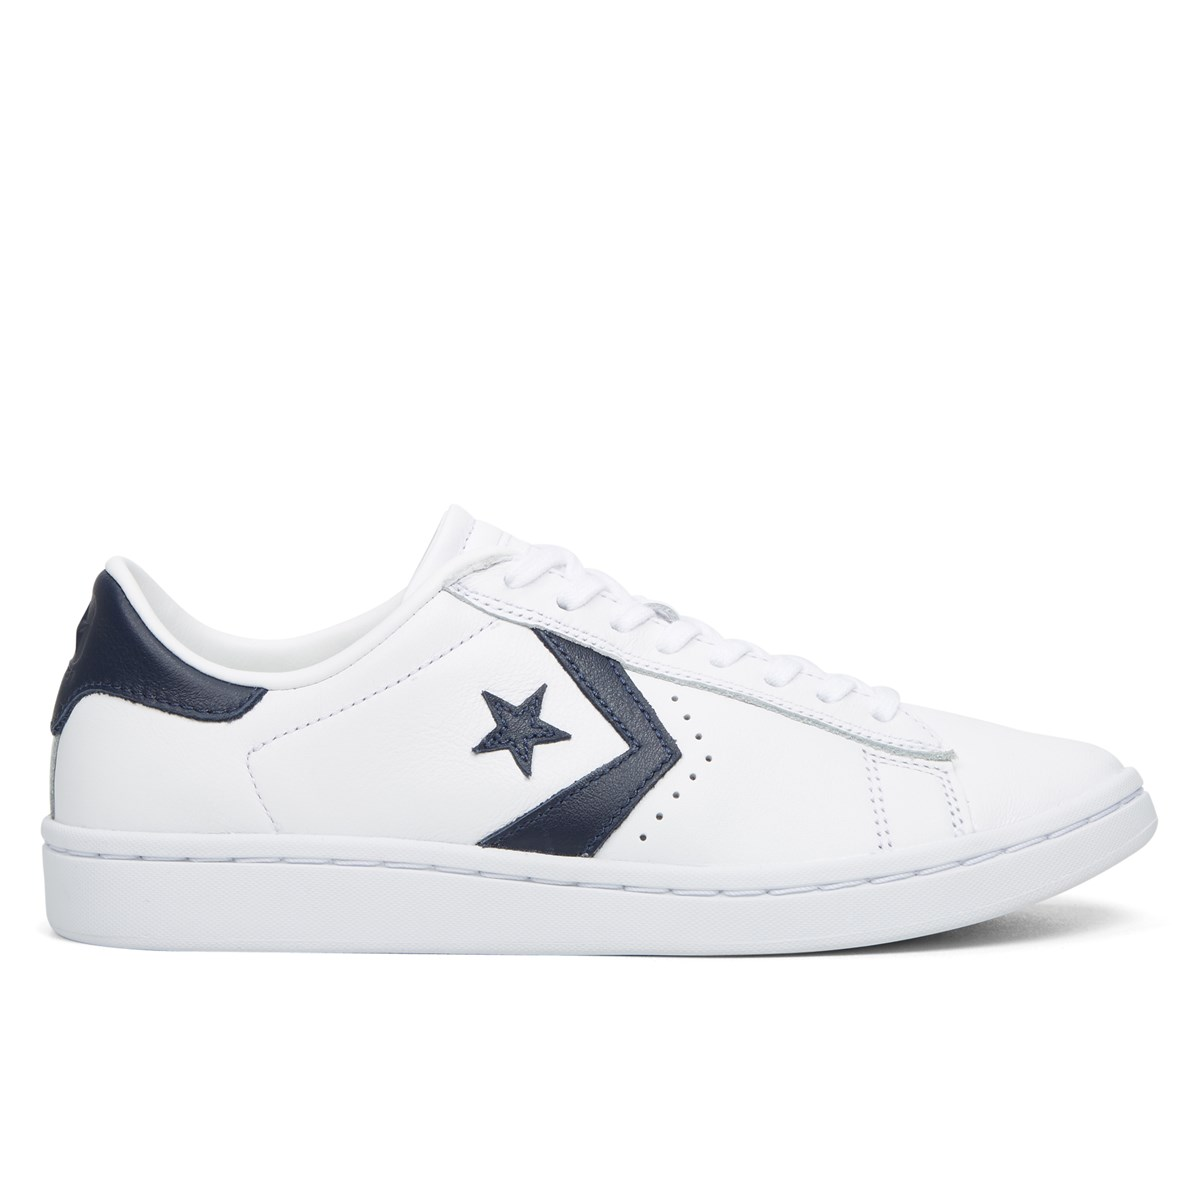 Women's Pro Leather Low Top White/Navy Sneakers